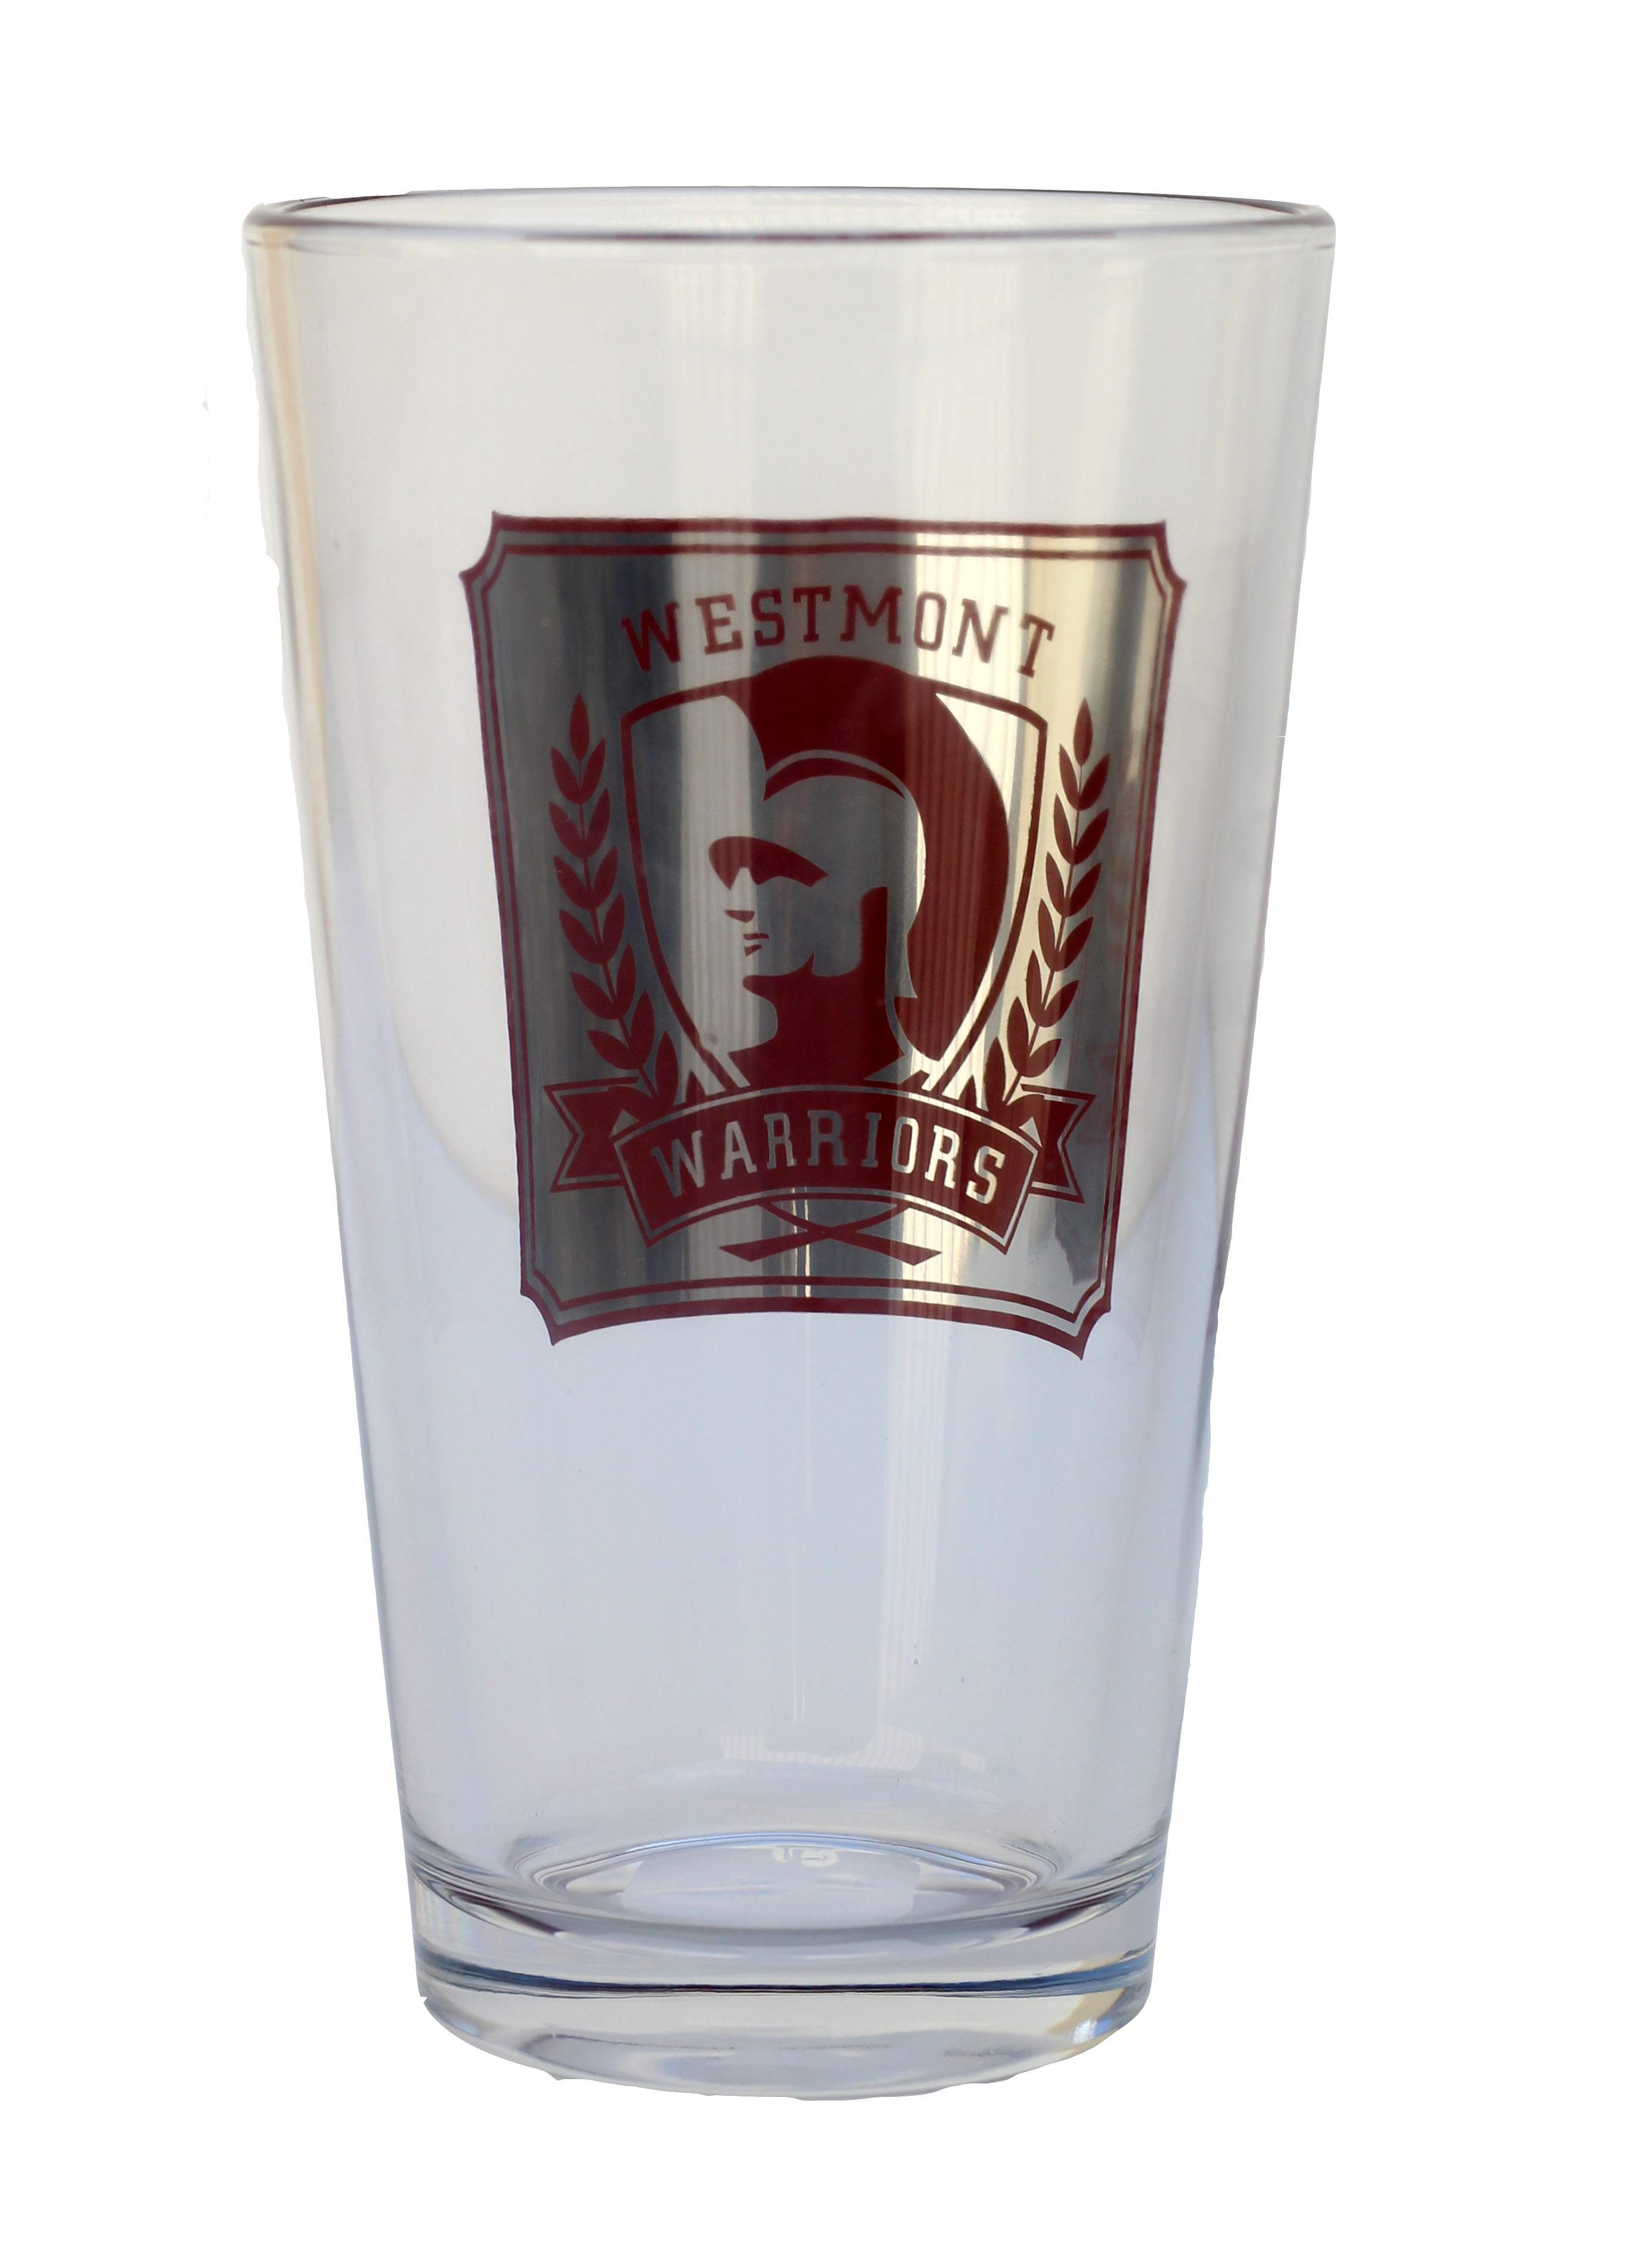 Alternative Image for the Westmont Double View Pub Glass product